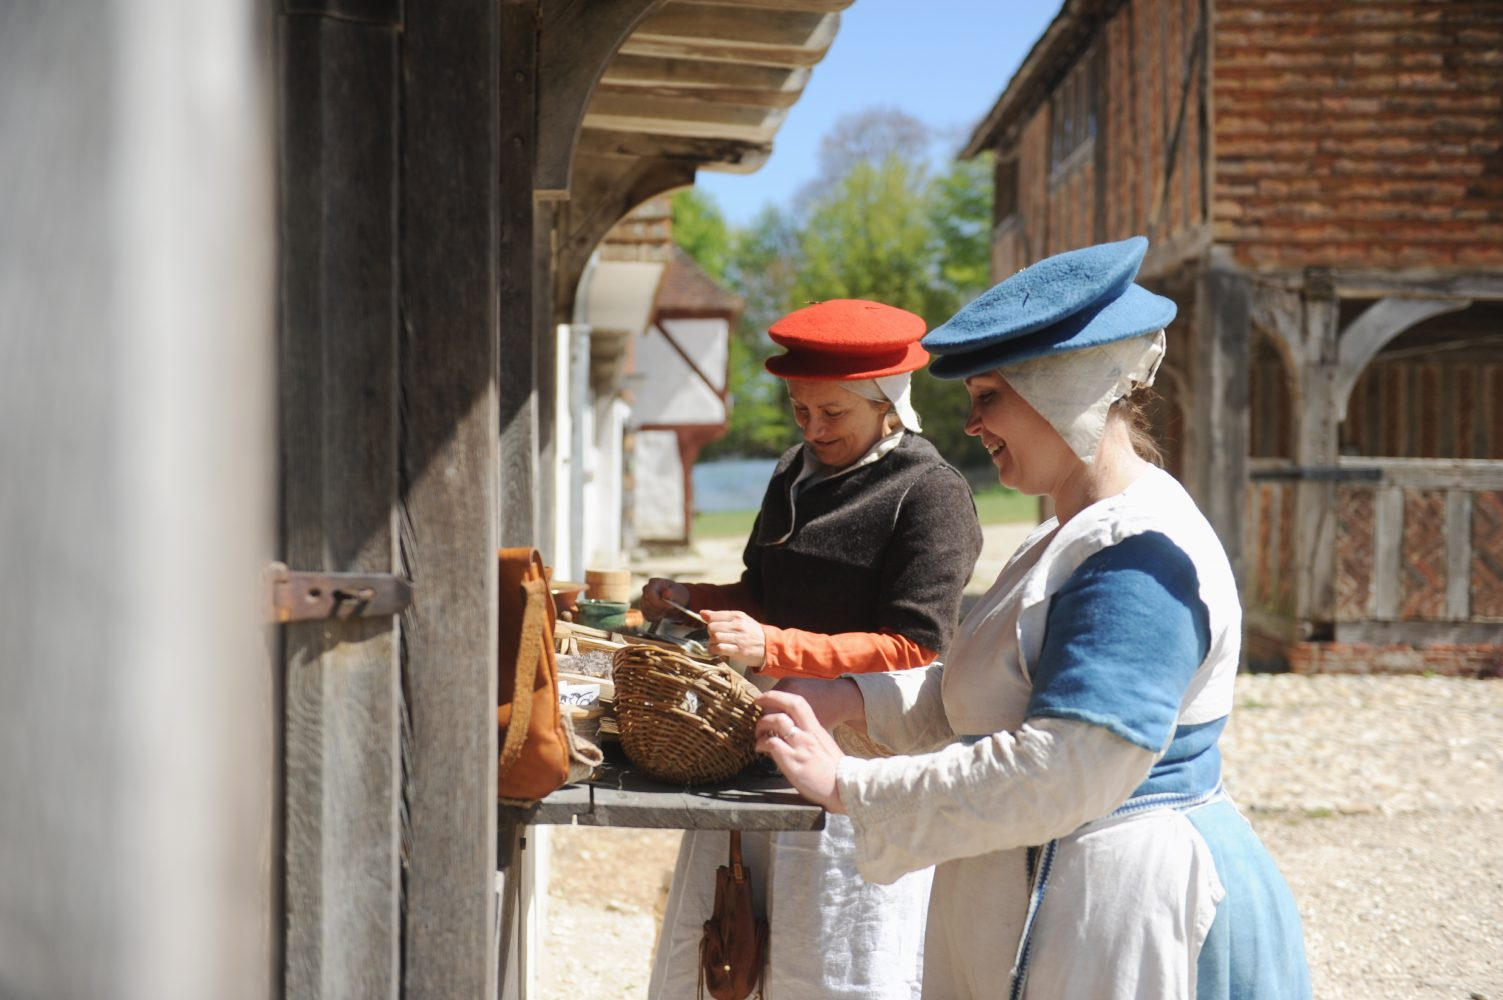 Staff in costume at Weald and Downland Living Museum